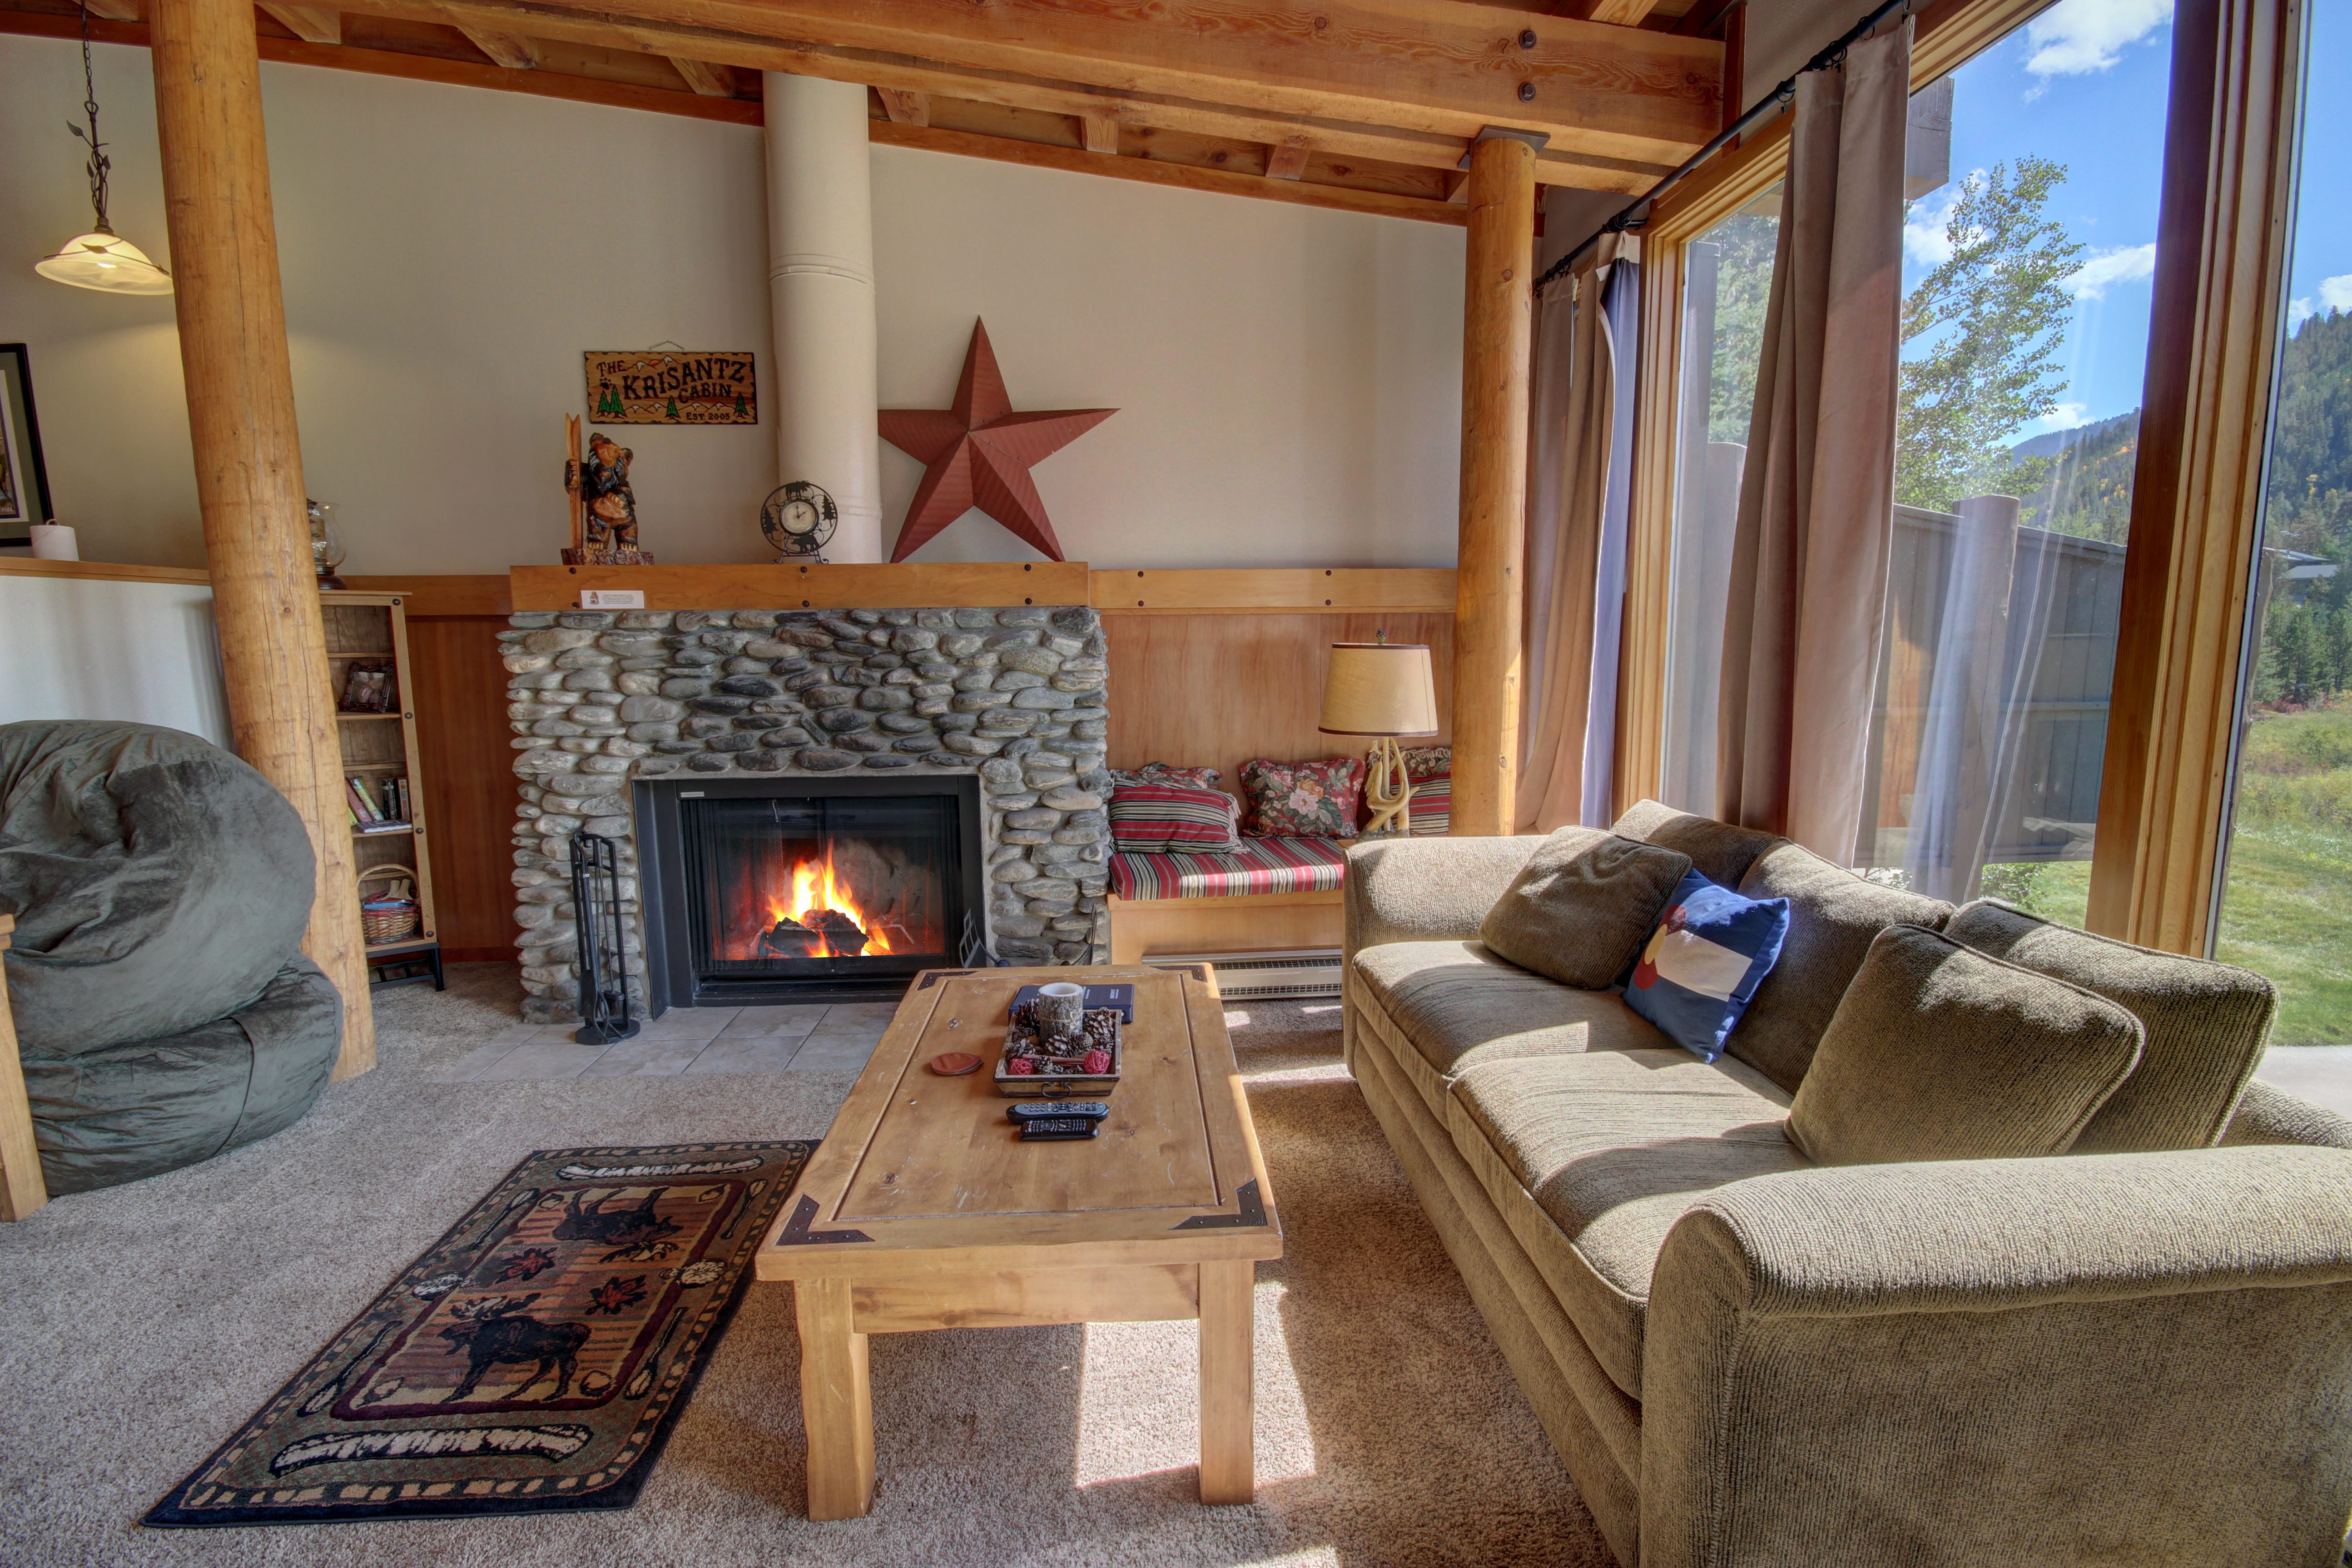 Enjoy relaxing with cozy fireplace and couches